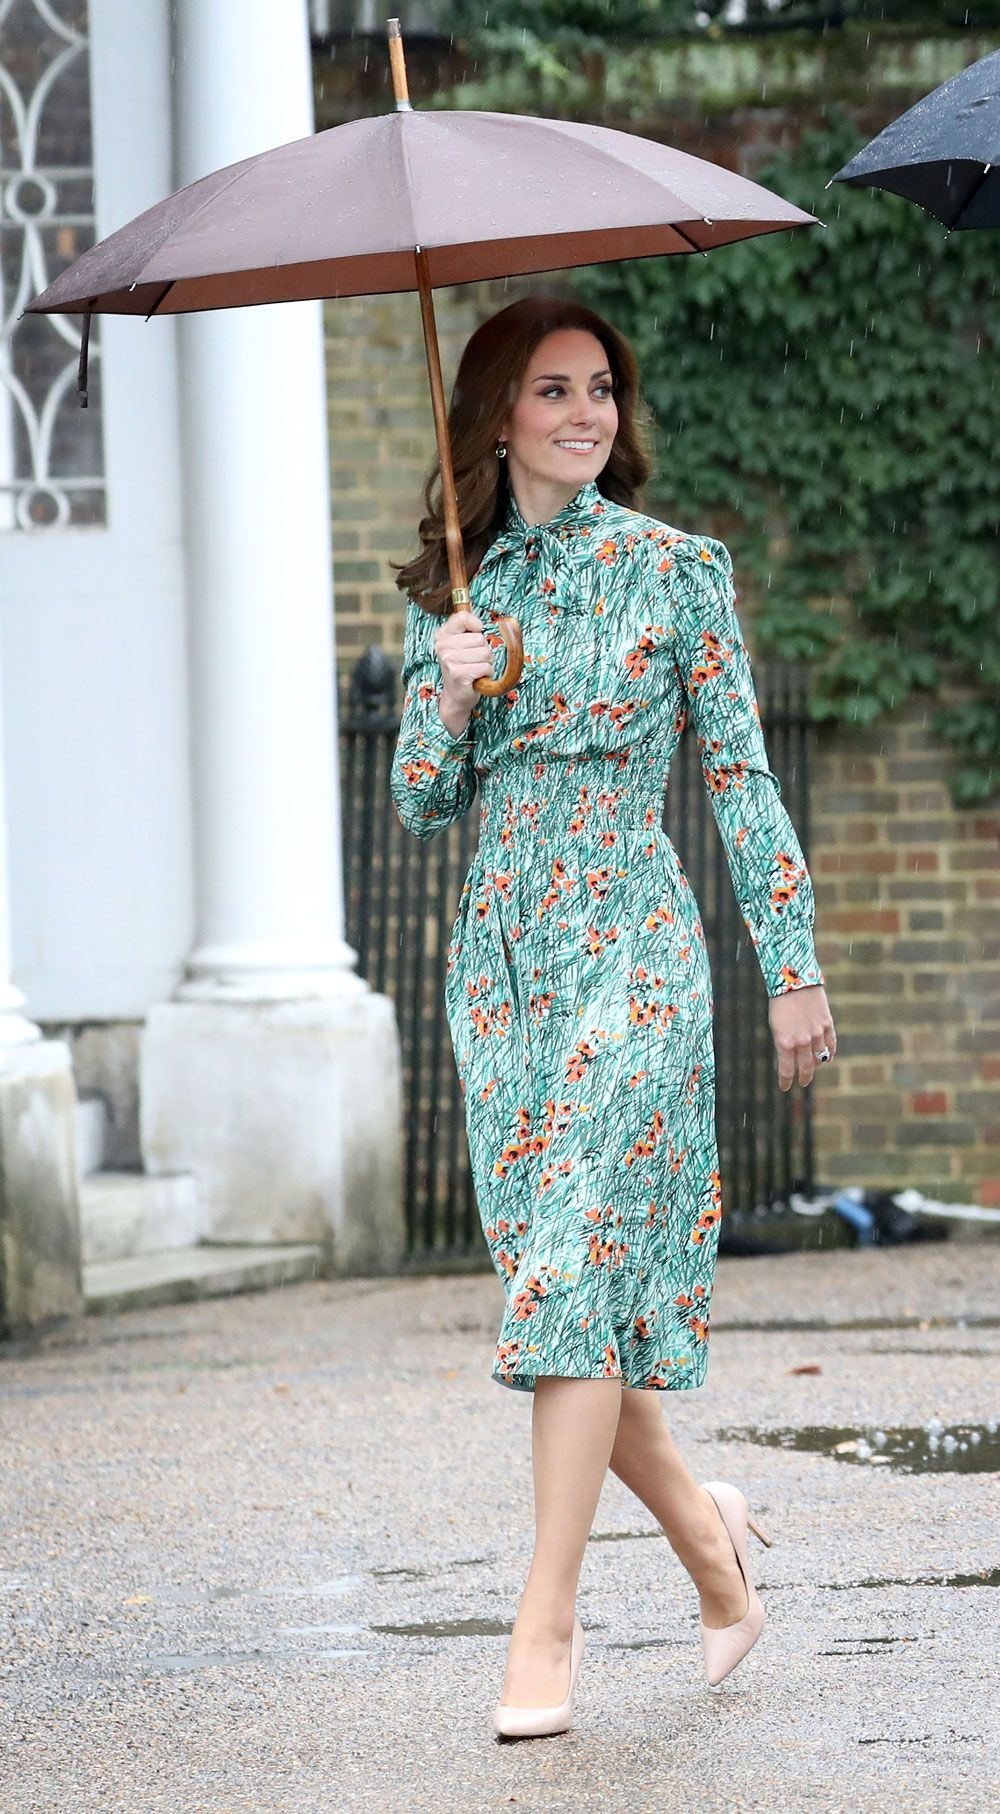 Kate Middleton style: The Duchess\' best ever dresses and outfits